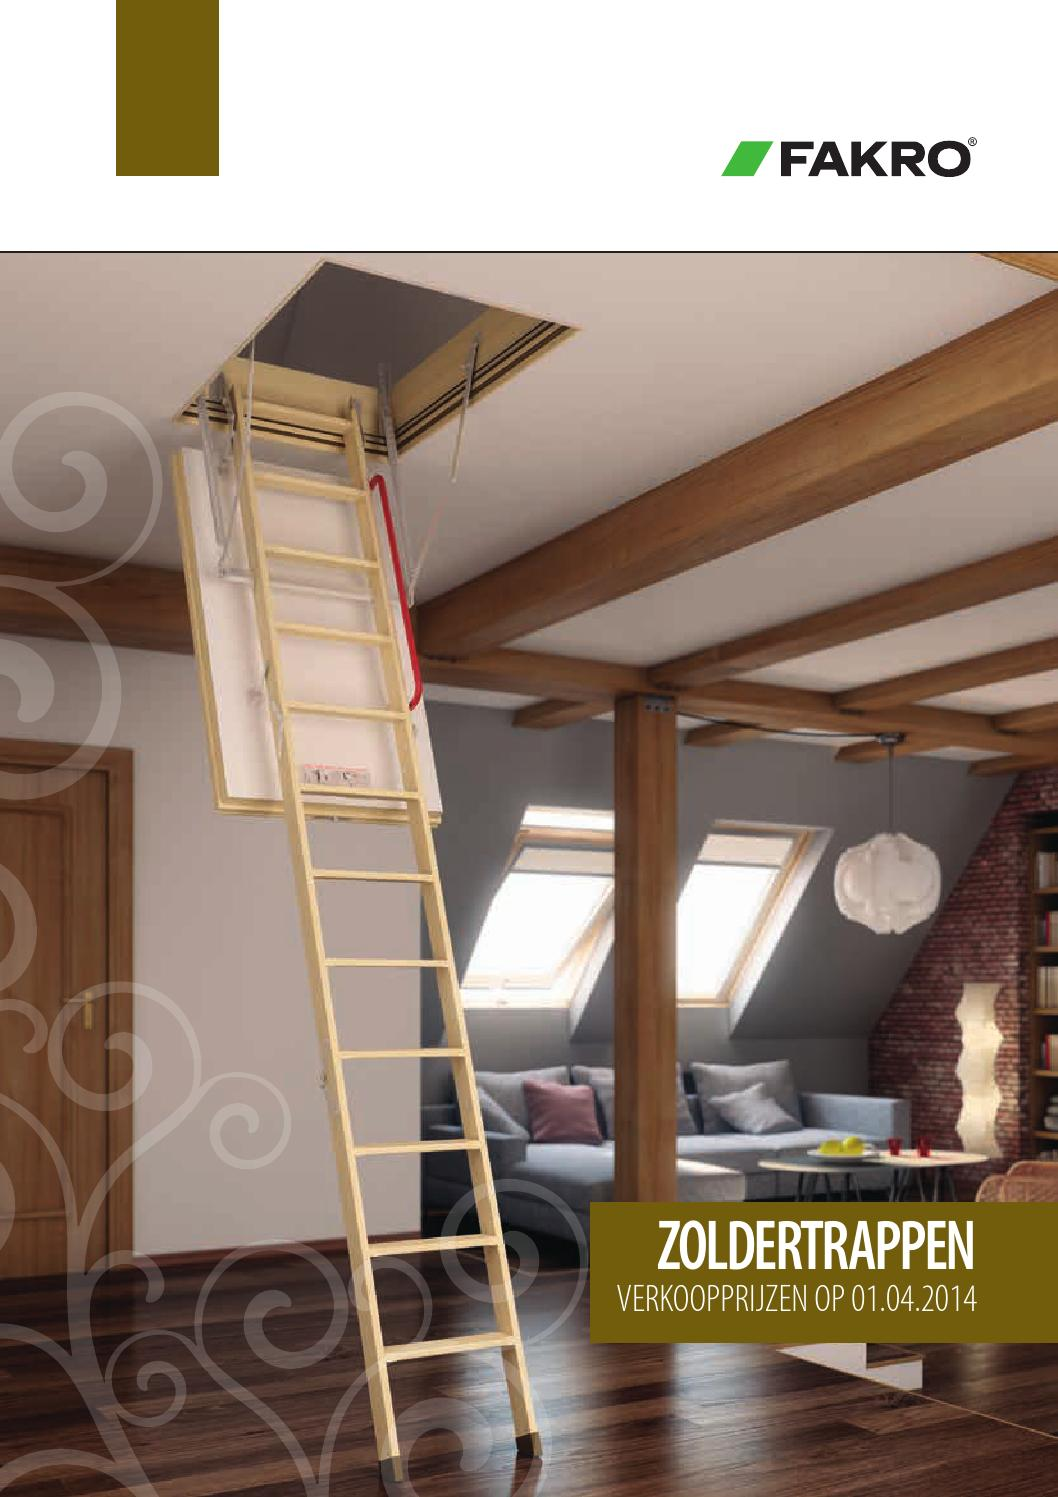 Zoldertrap Plaatsen Fakro Zoldertrappen By W247 Be Issuu